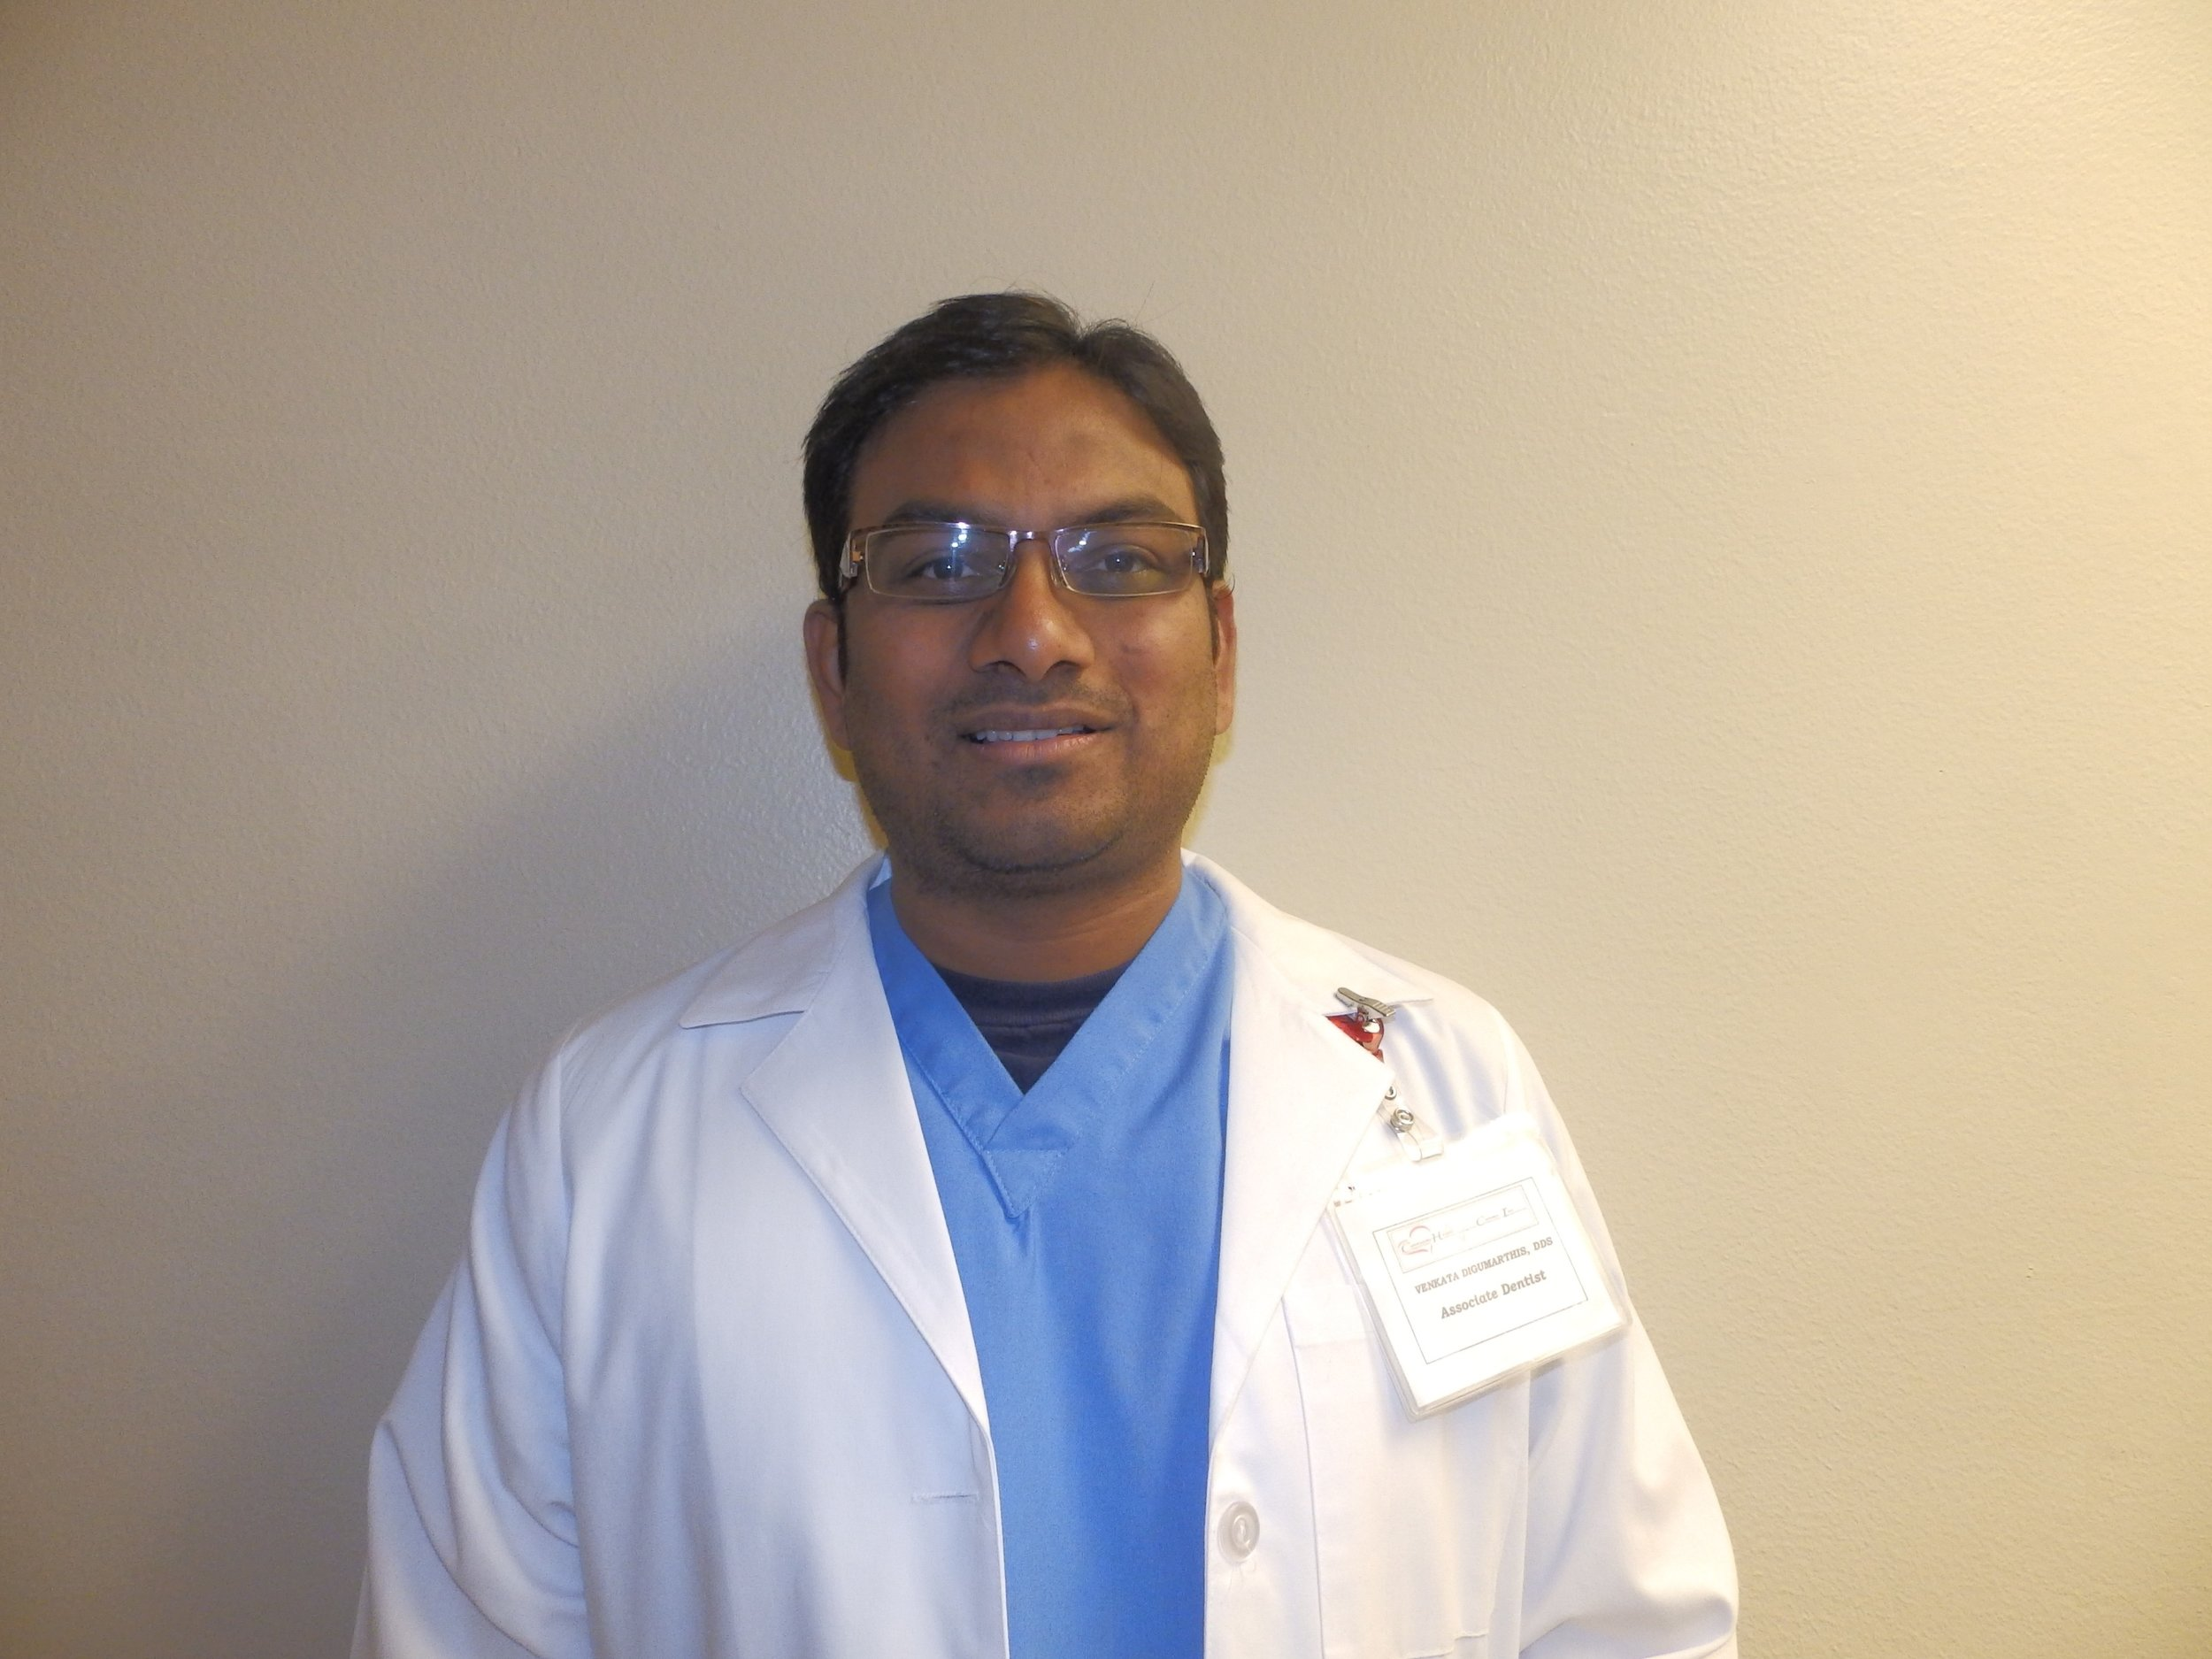 Dr. Venkata Digumarthi, Dentist at Langston